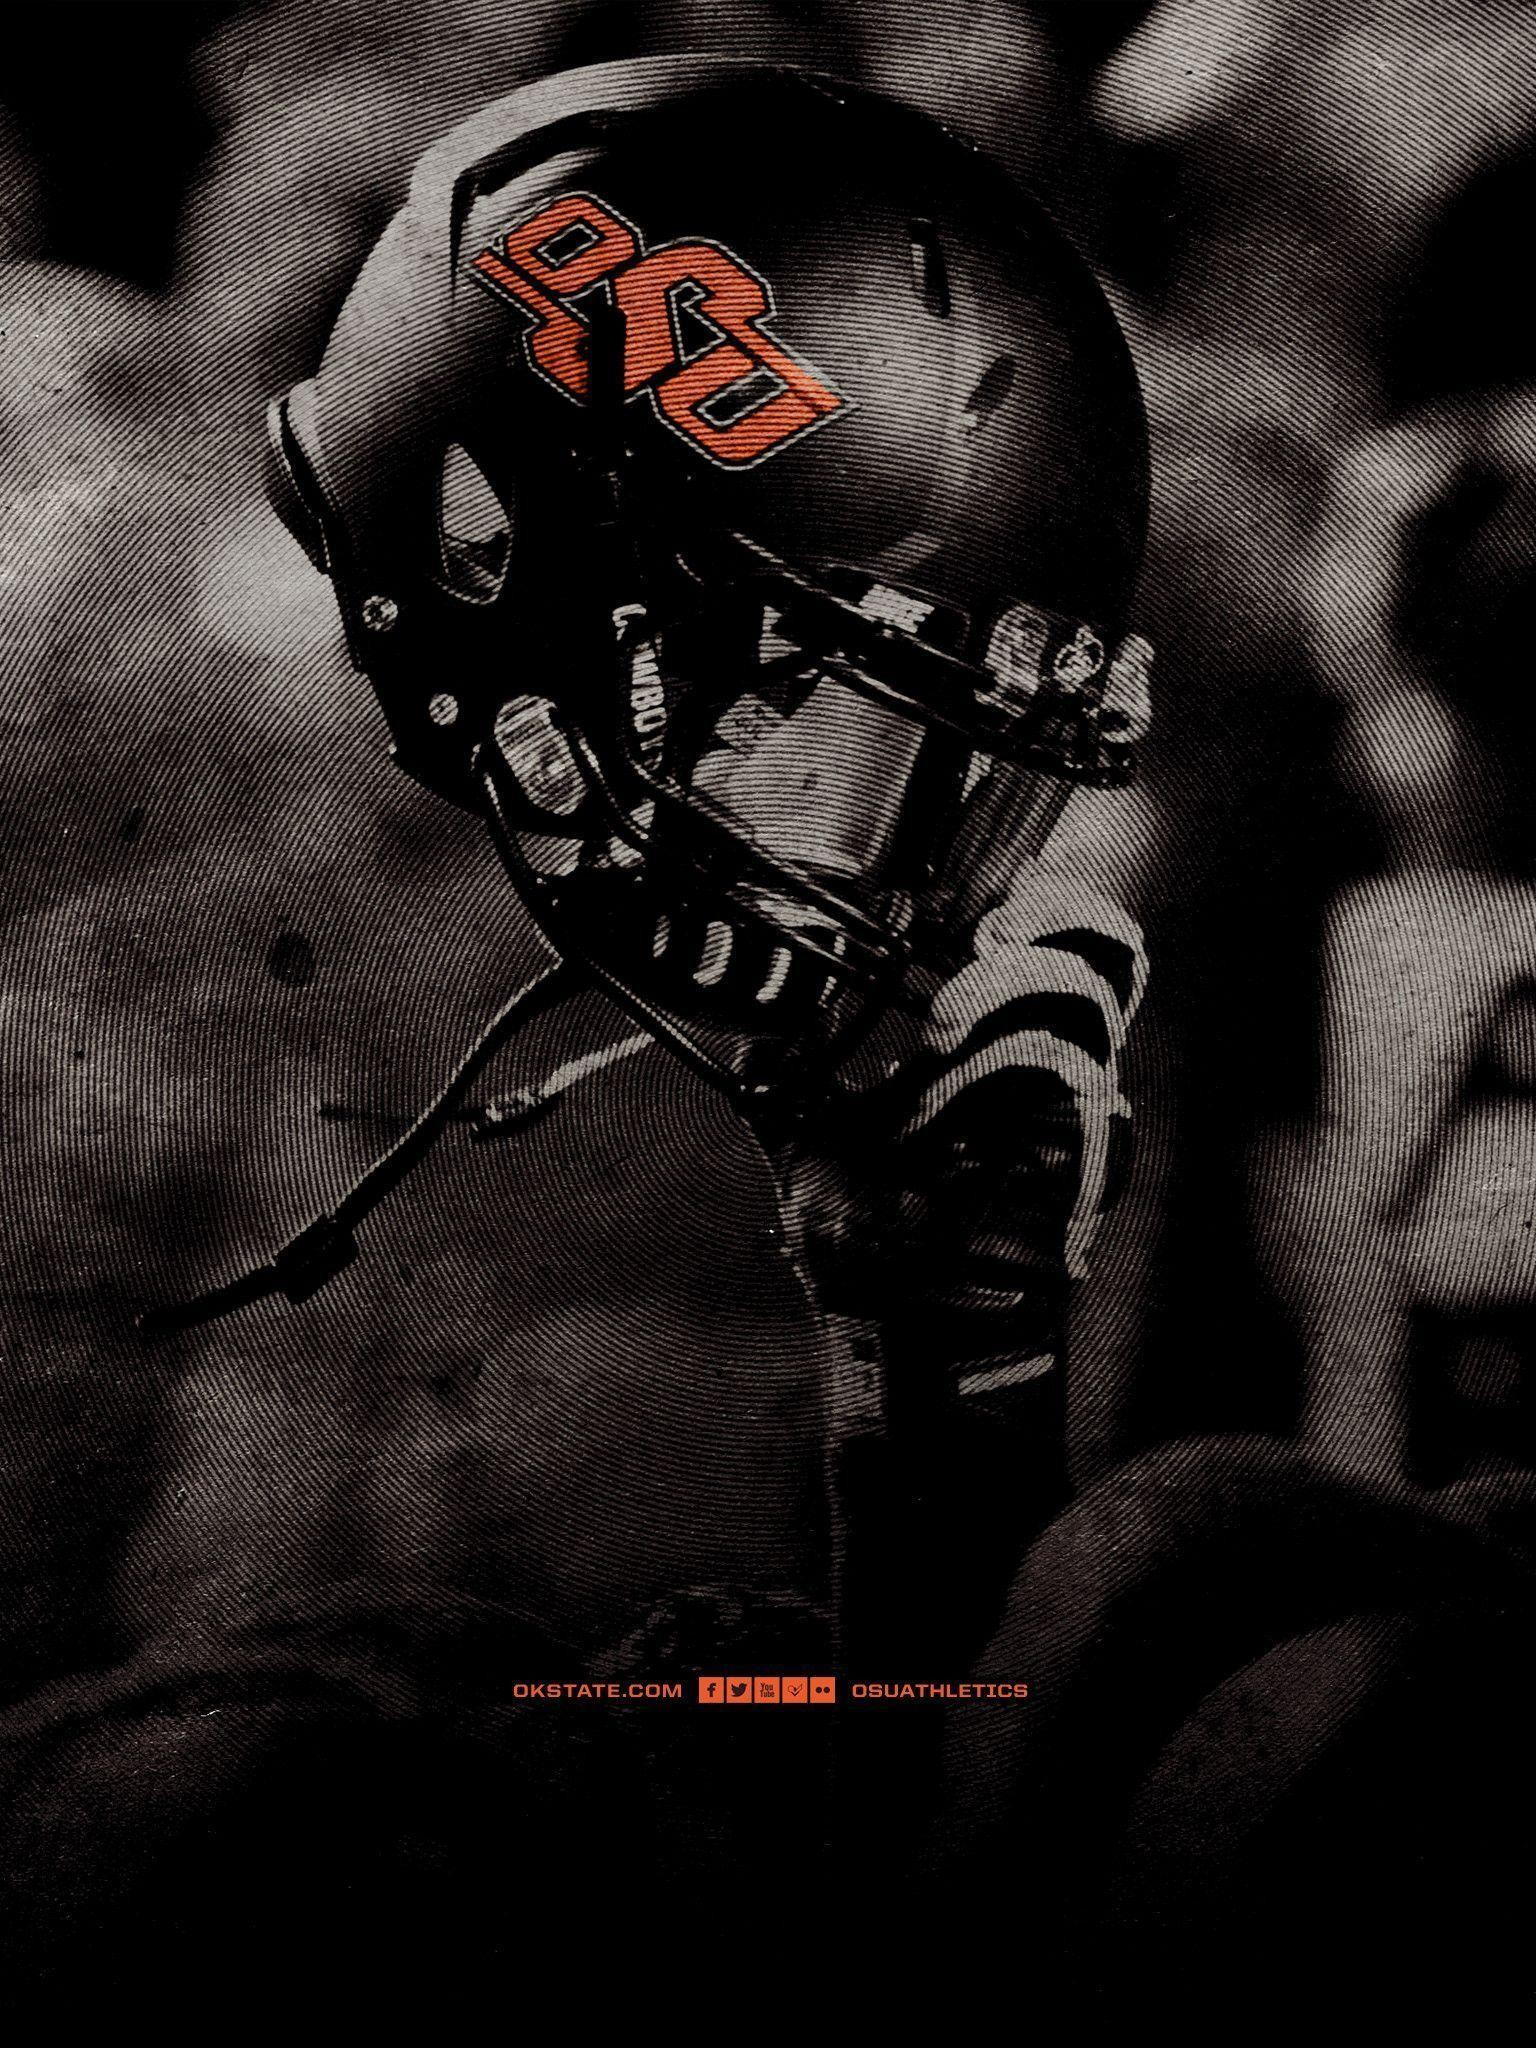 Mobile Schedule Wallpaper – Oklahoma State Official Athletic Site